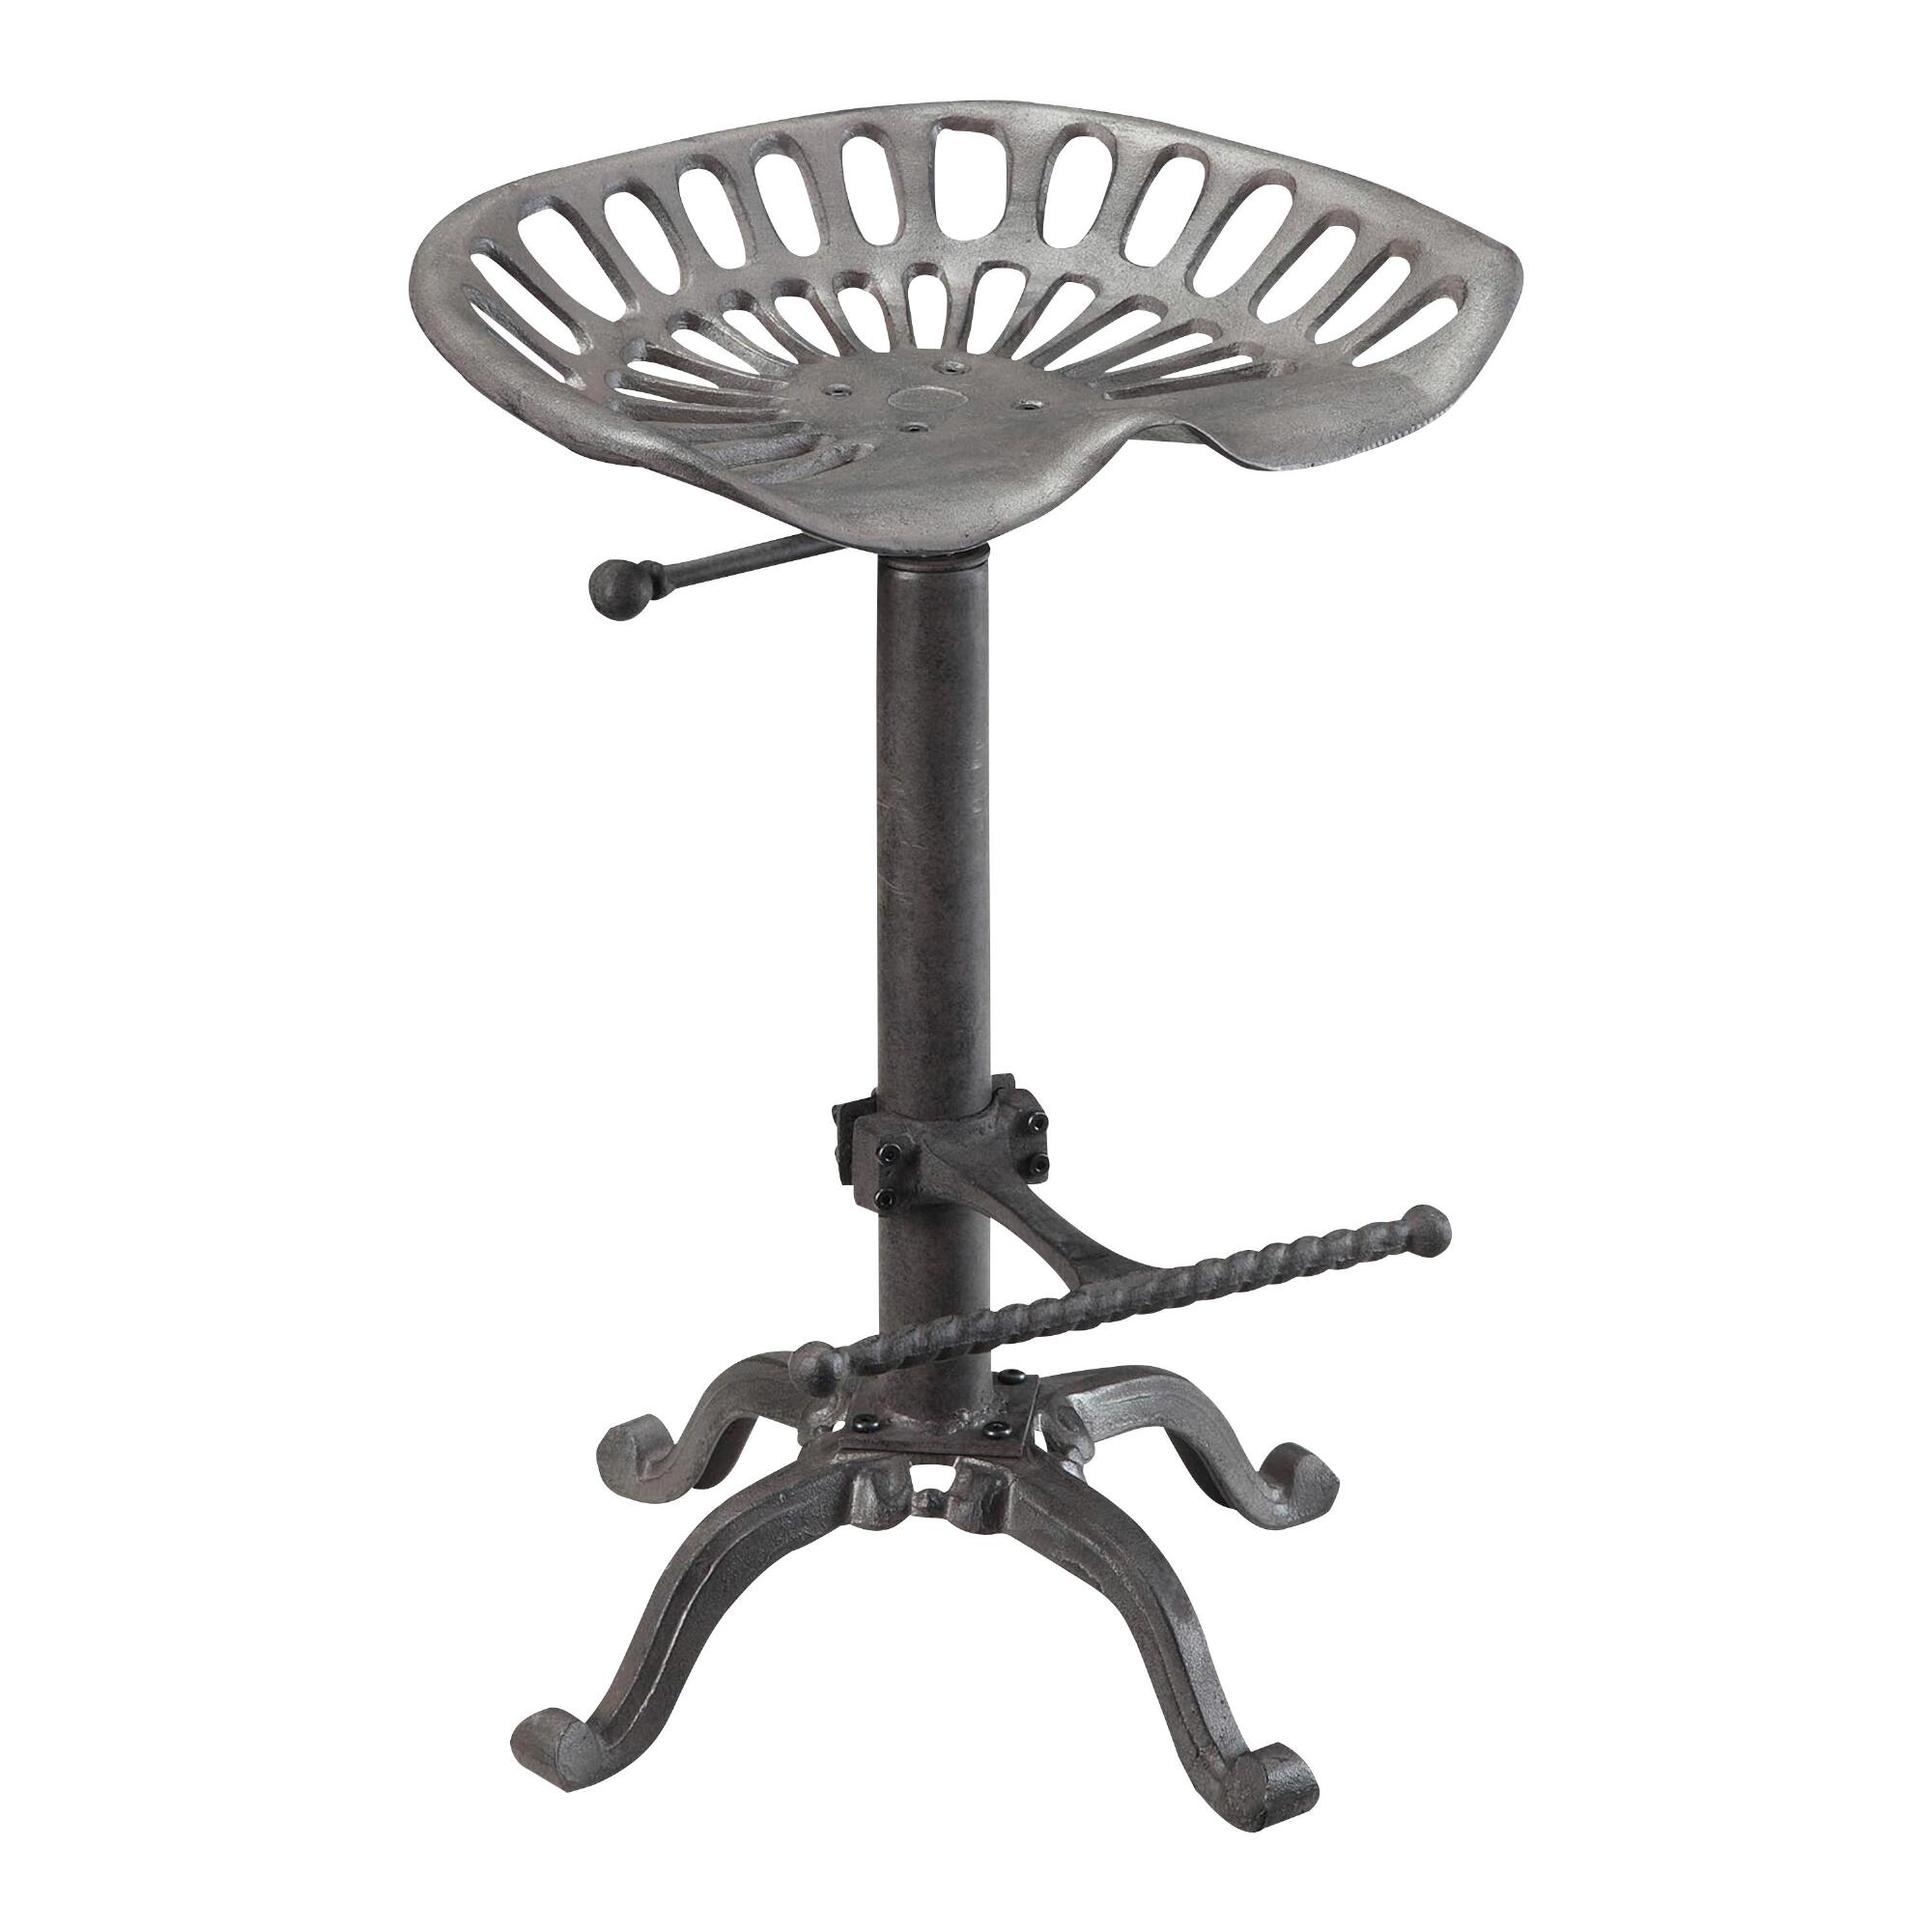 Stoos Metal Tractor Seat Stools : Cast iron and metal mabry adjustable tractor seat stool